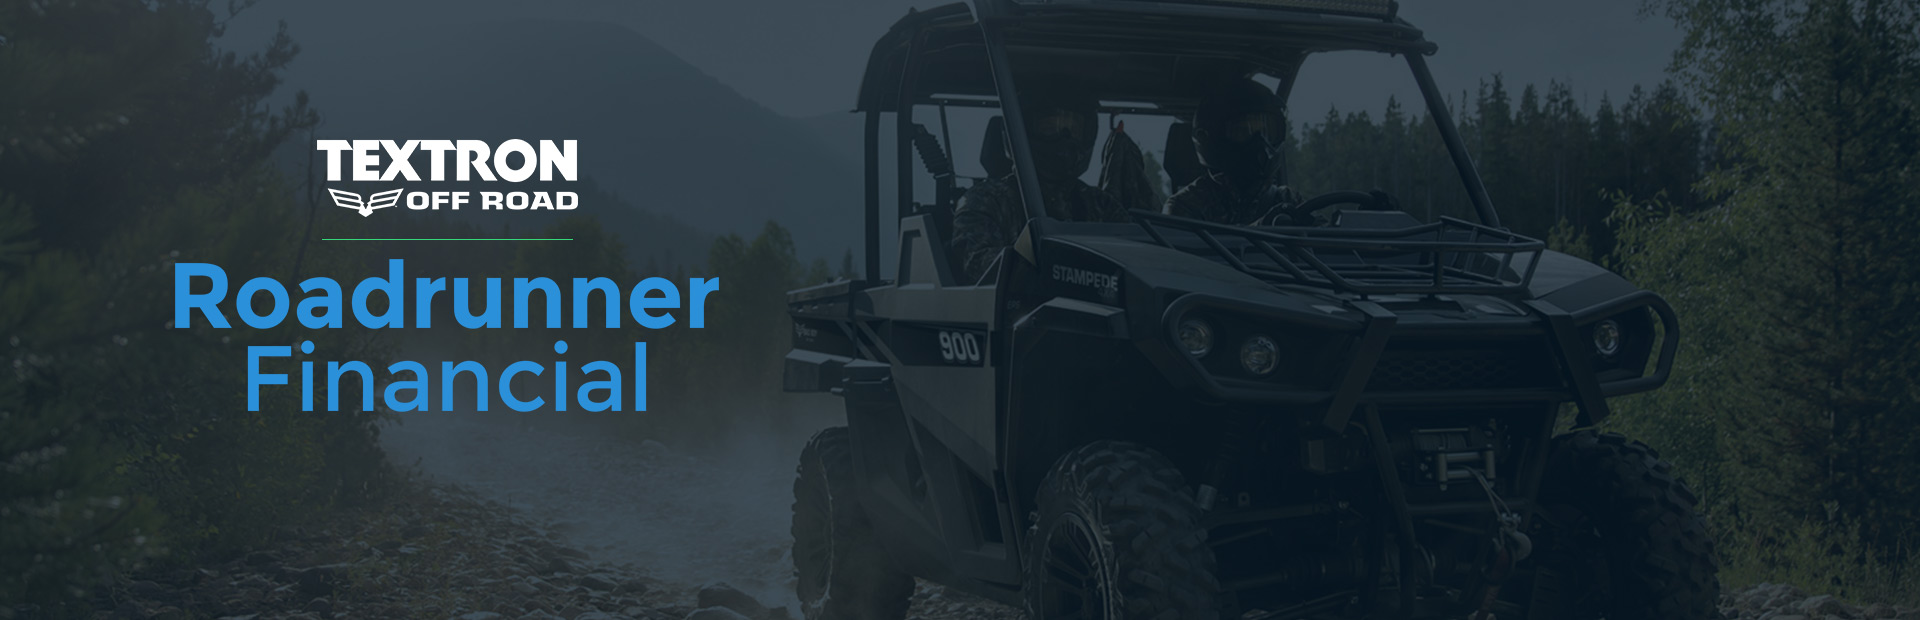 Textron Off Road: Roadrunner Financial